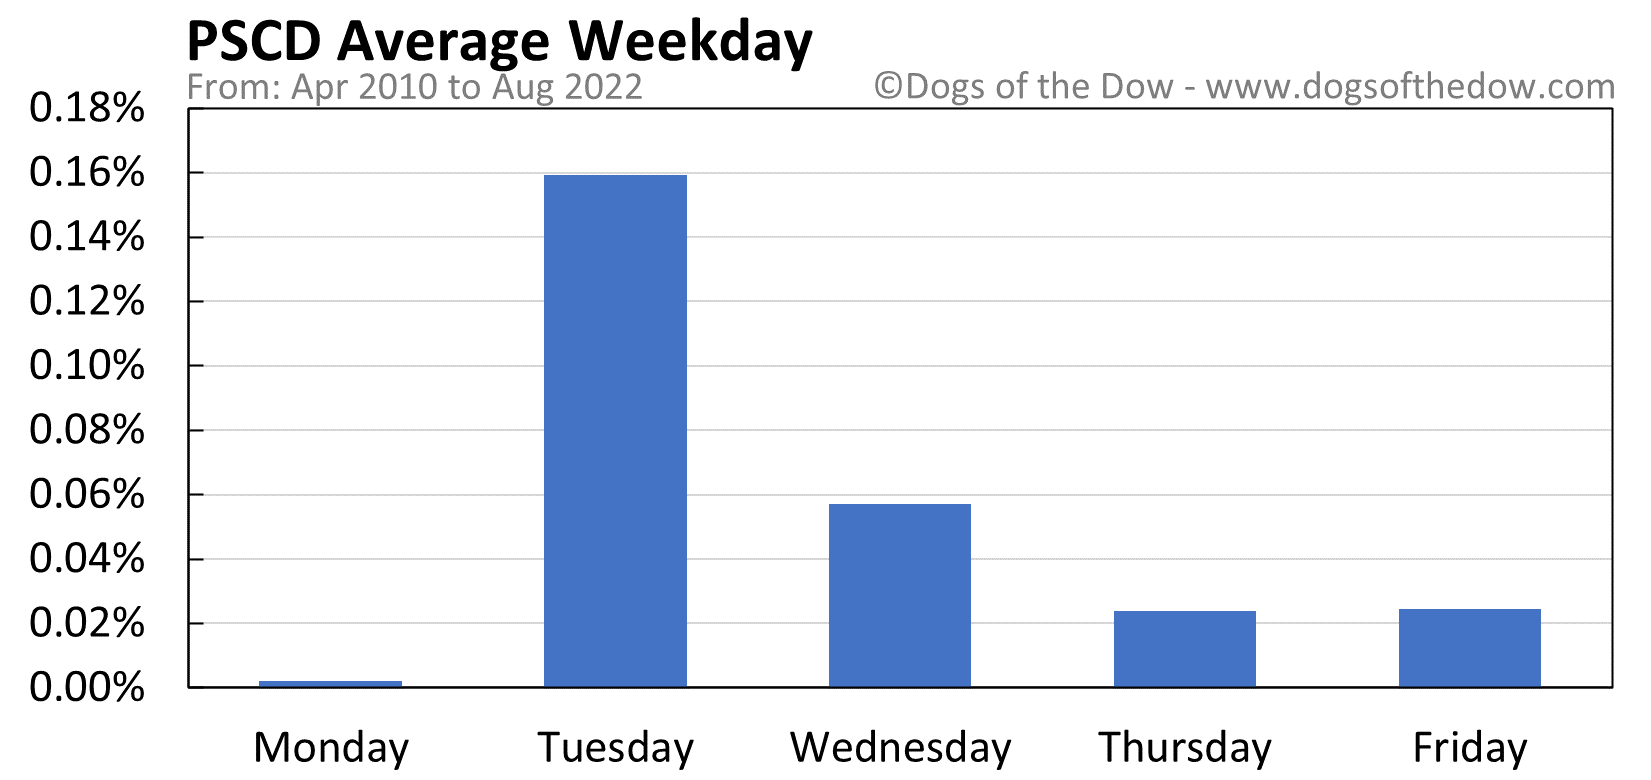 PSCD average weekday chart